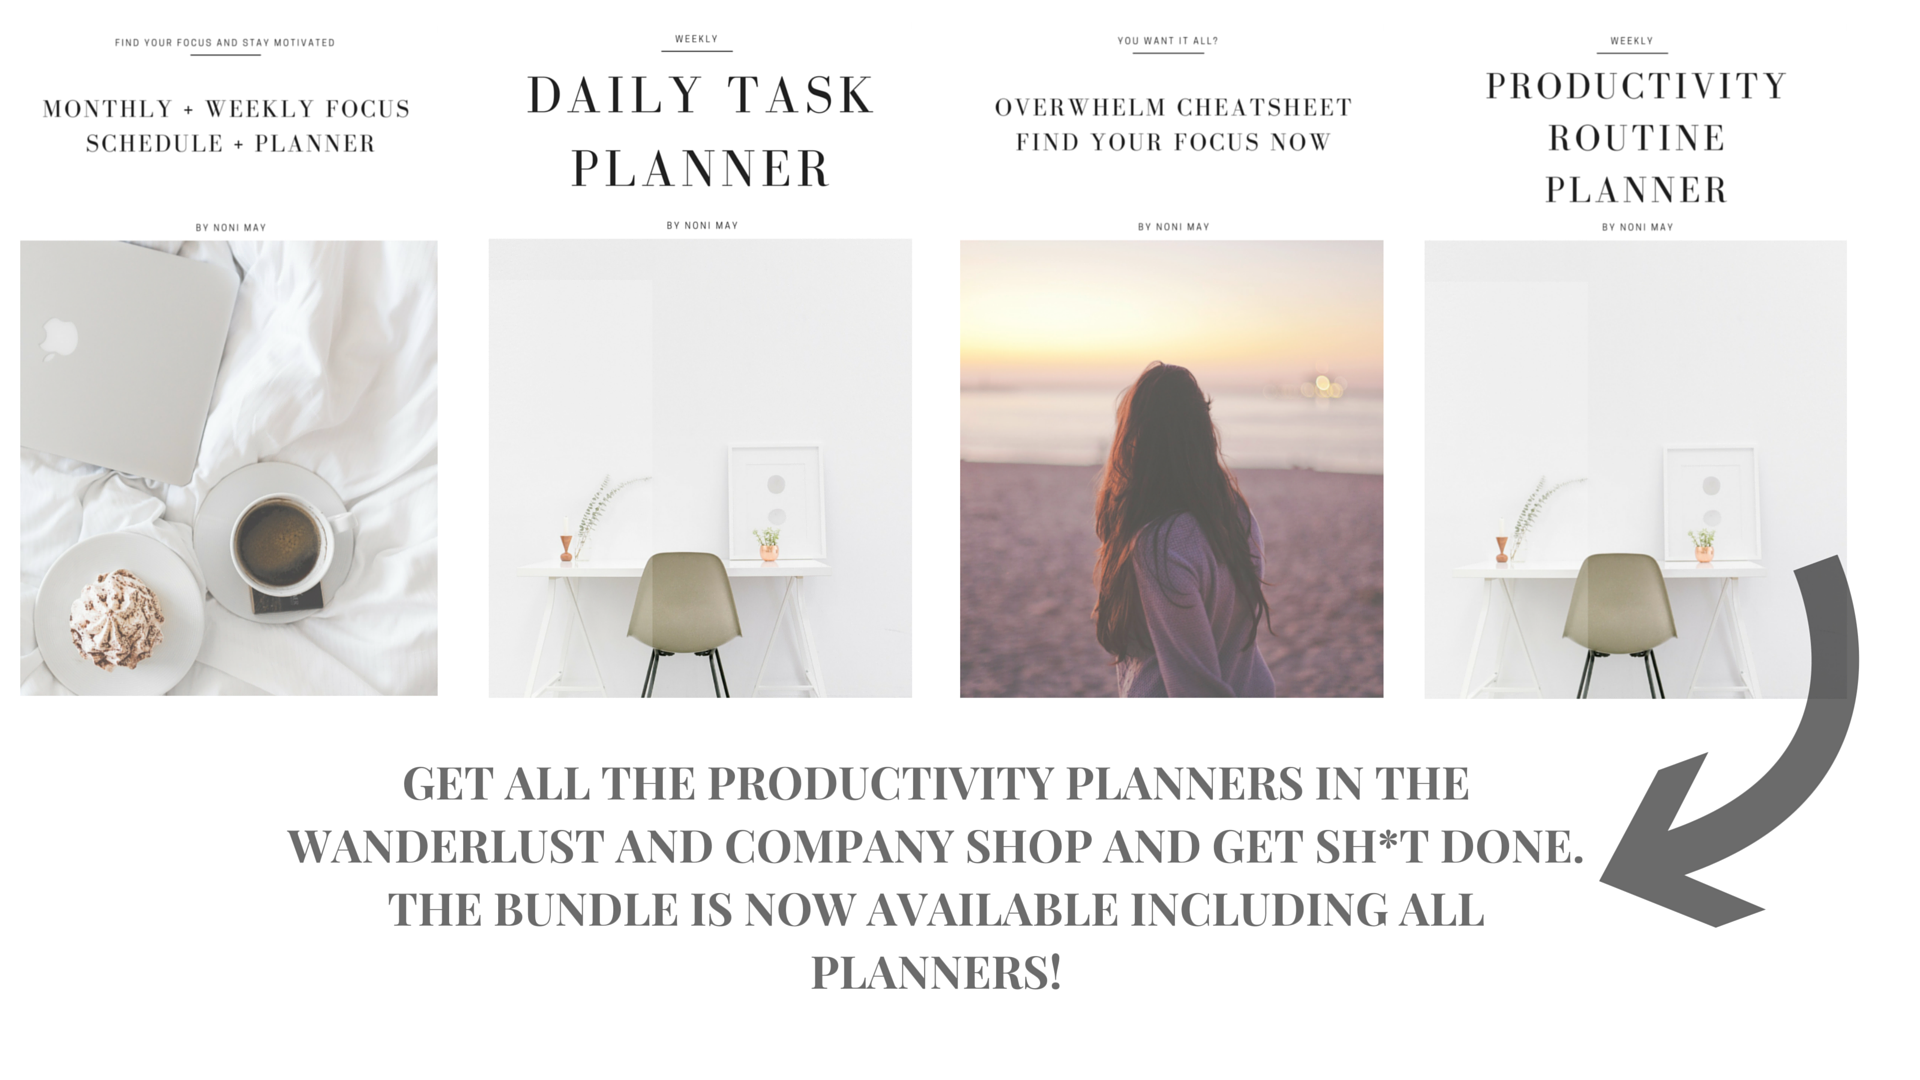 Productivity planners by Noni May for Wanderlust and Company.